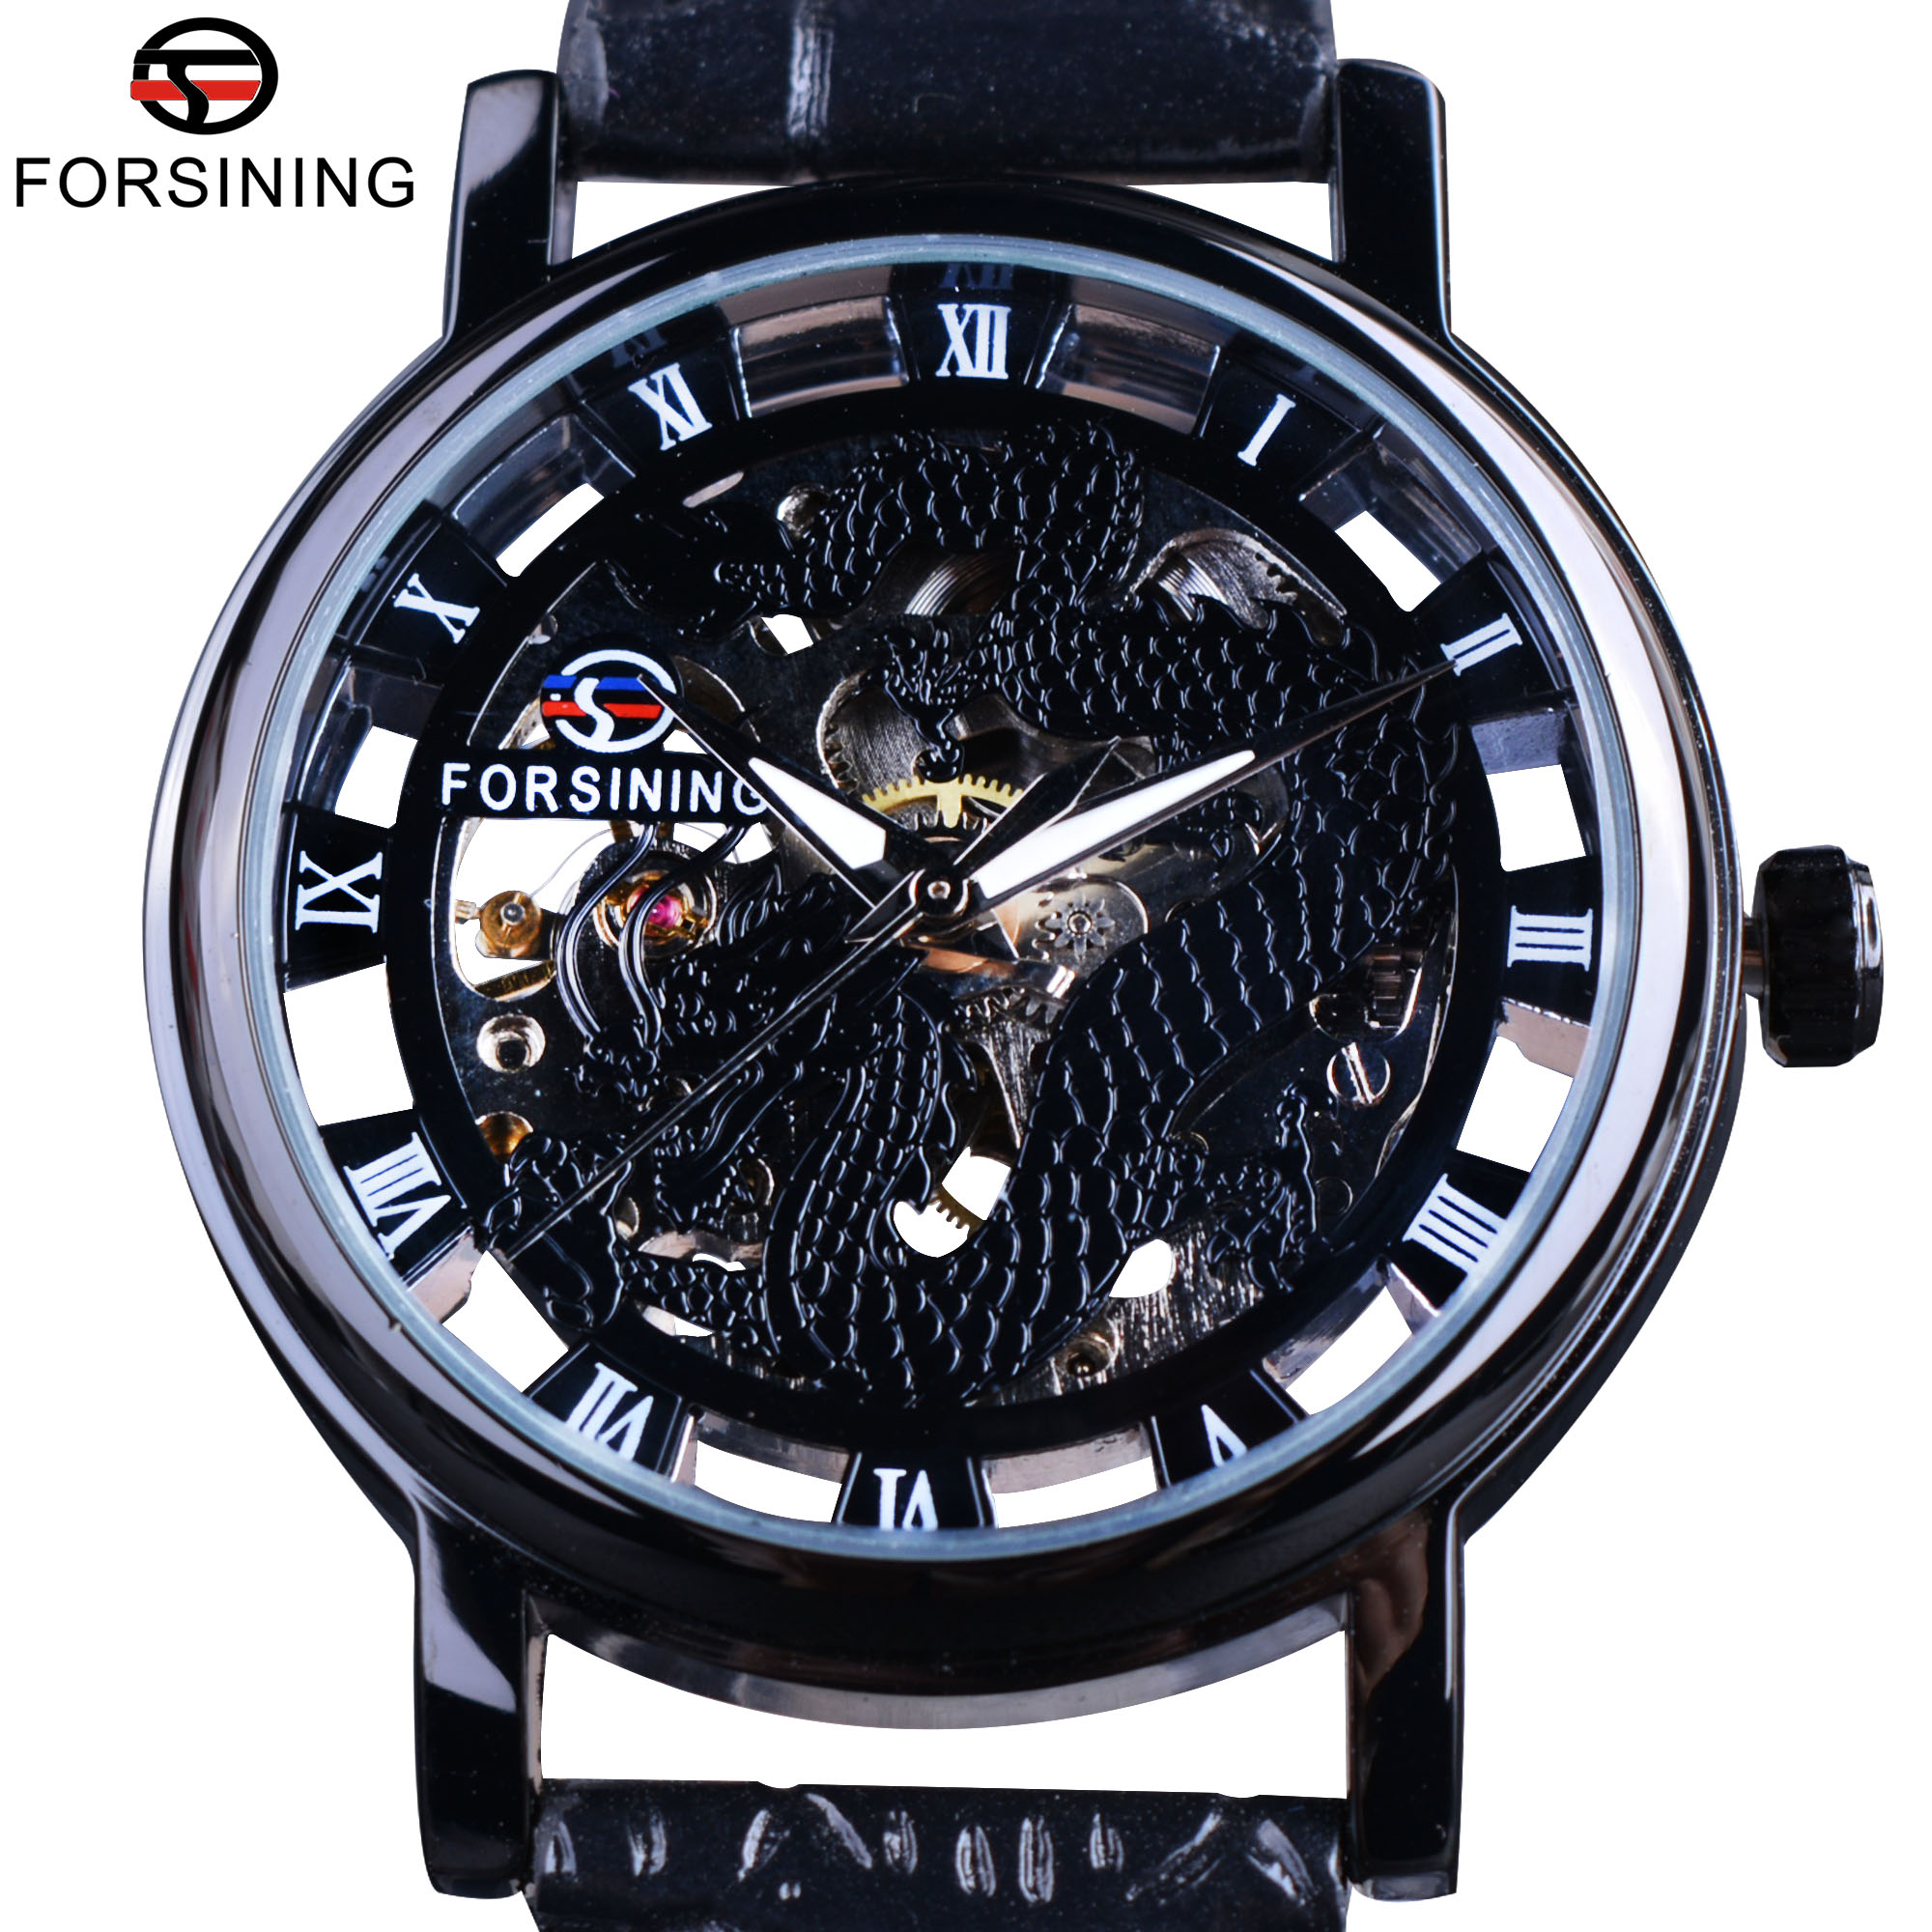 Forsining Chinese Simple Design Transparent Case Mens Watches Top Brand Luxury Skeleton Watch Sport Mechanical Watch Male Clock подвесной светильник arte lamp montana a9360sp 1ab